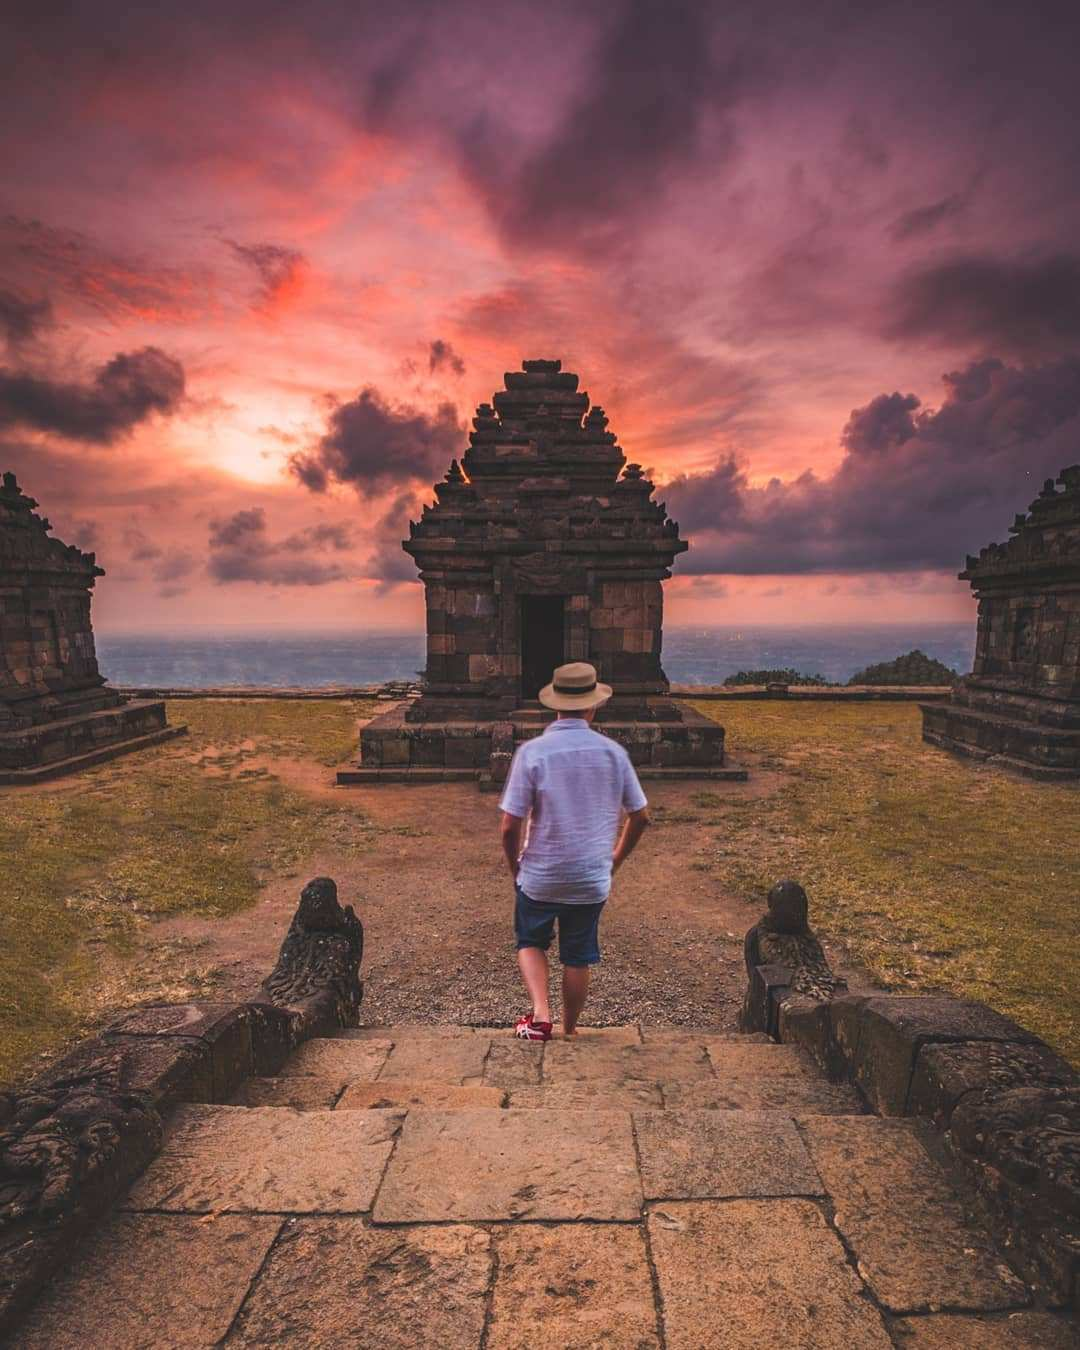 Suasana Sunset Candi Ijo Jogja Images From @andrewtaswin